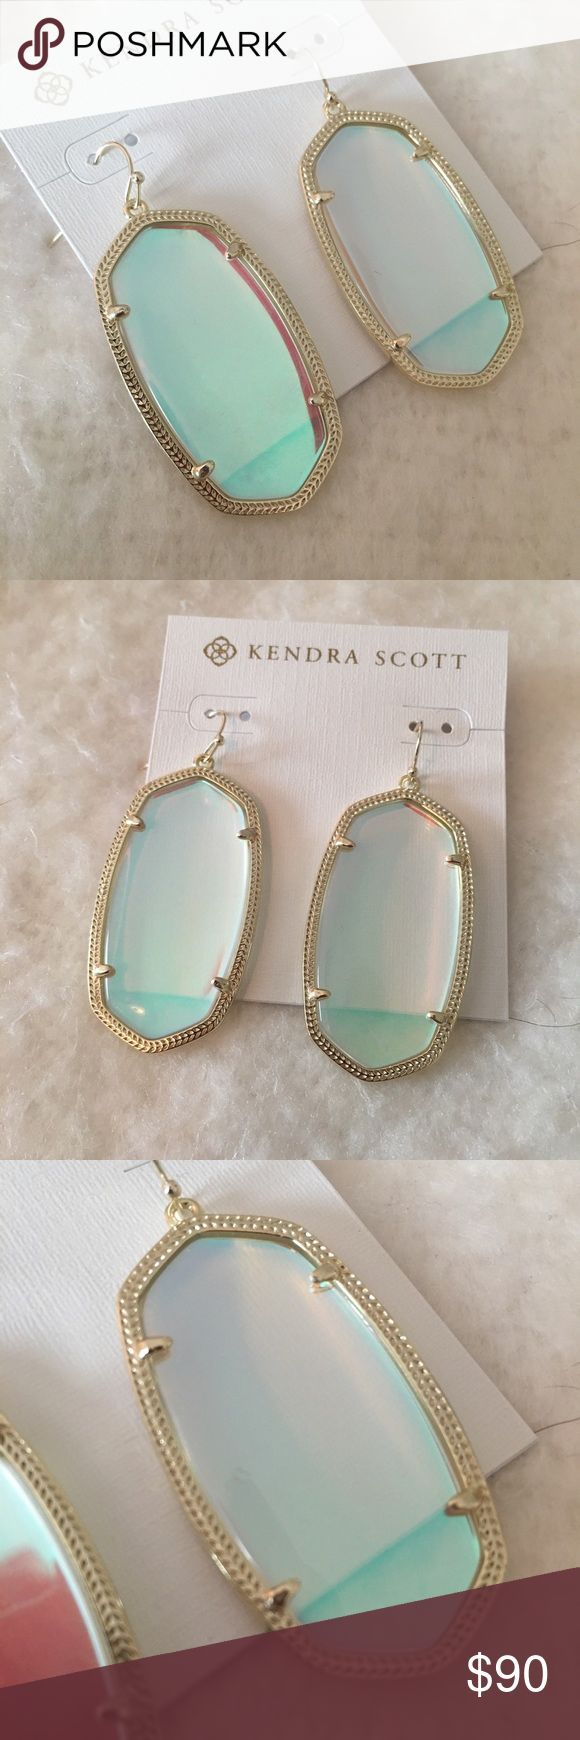 NWT Kendra Scott Danielle Dichroic Glass Earrings Rare! These are brand new and never worn. Comes with pouch & box. Kendra Scott Jewelry Earrings